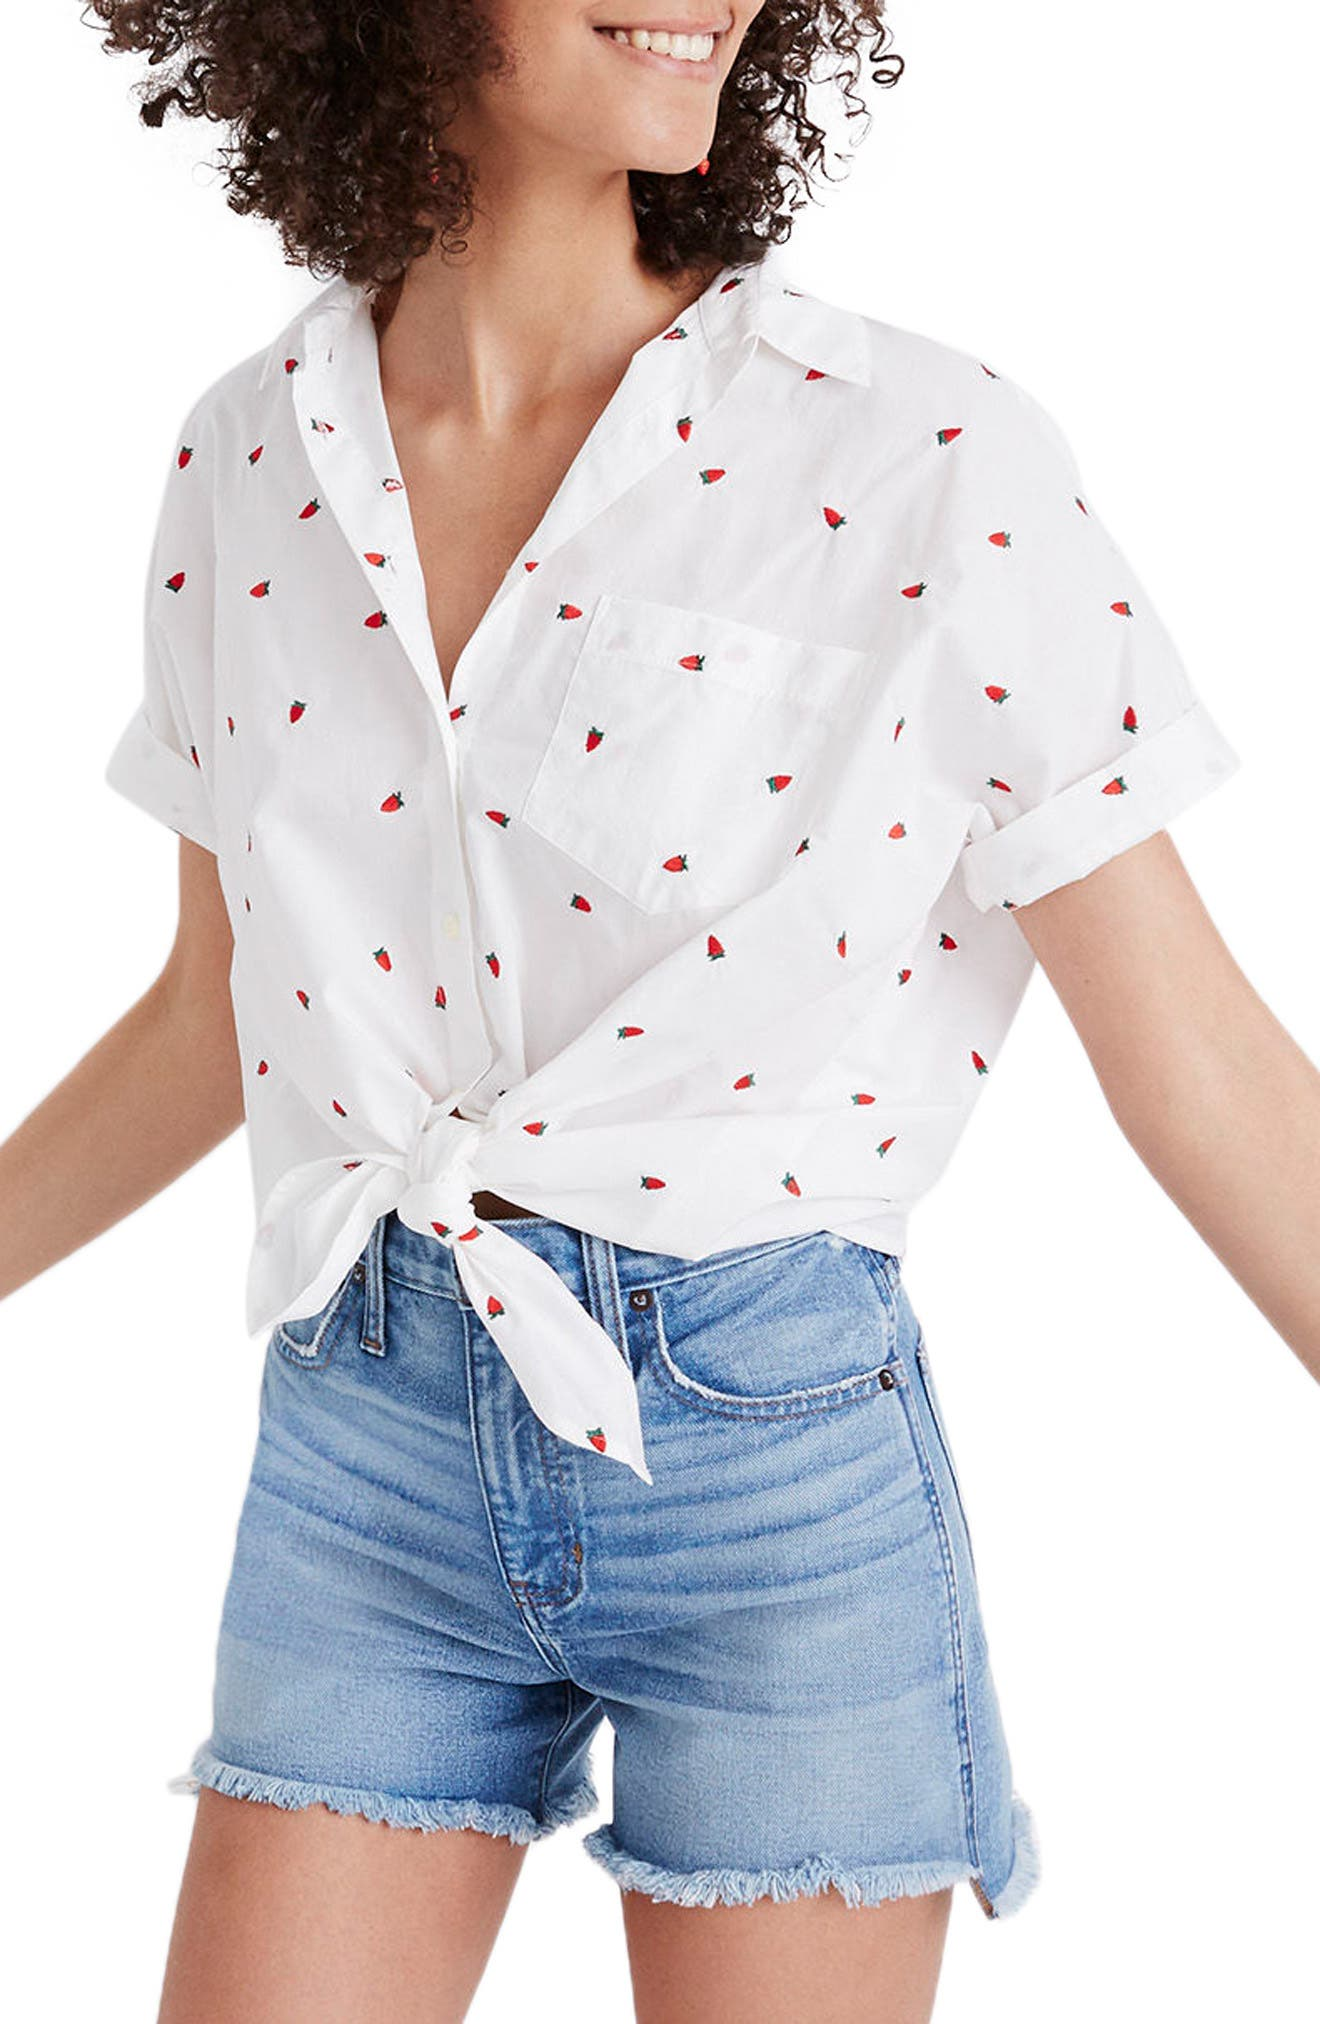 MADEWELL,                             Strawberry Embroidered Tie Front Shirt,                             Main thumbnail 1, color,                             100